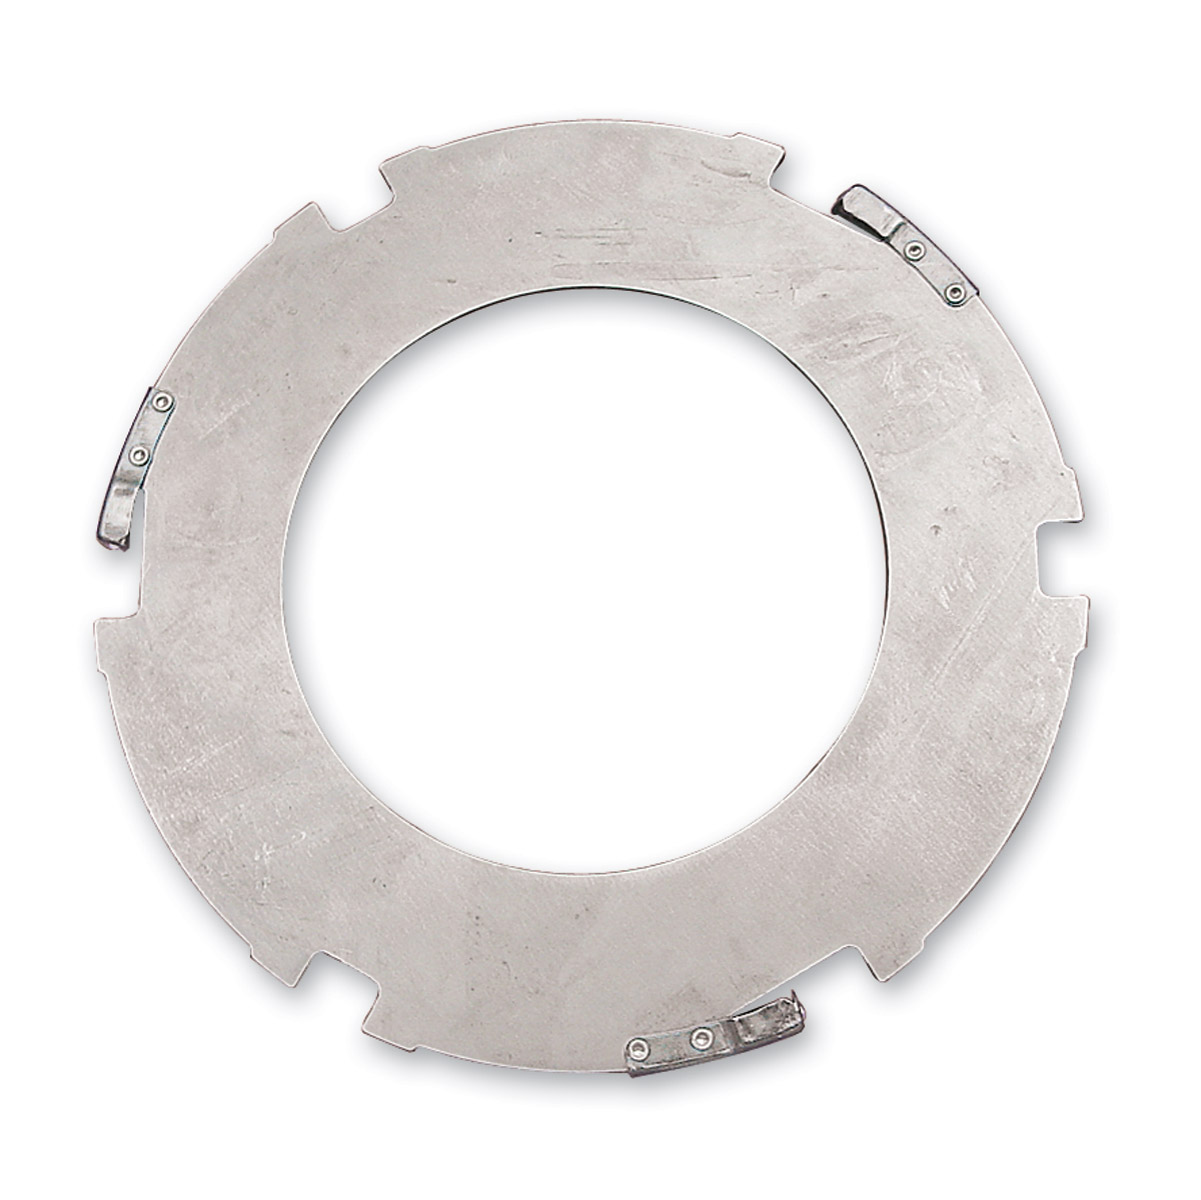 Alto Steel Clutch Plate with Silencers and Anti-Rattlers